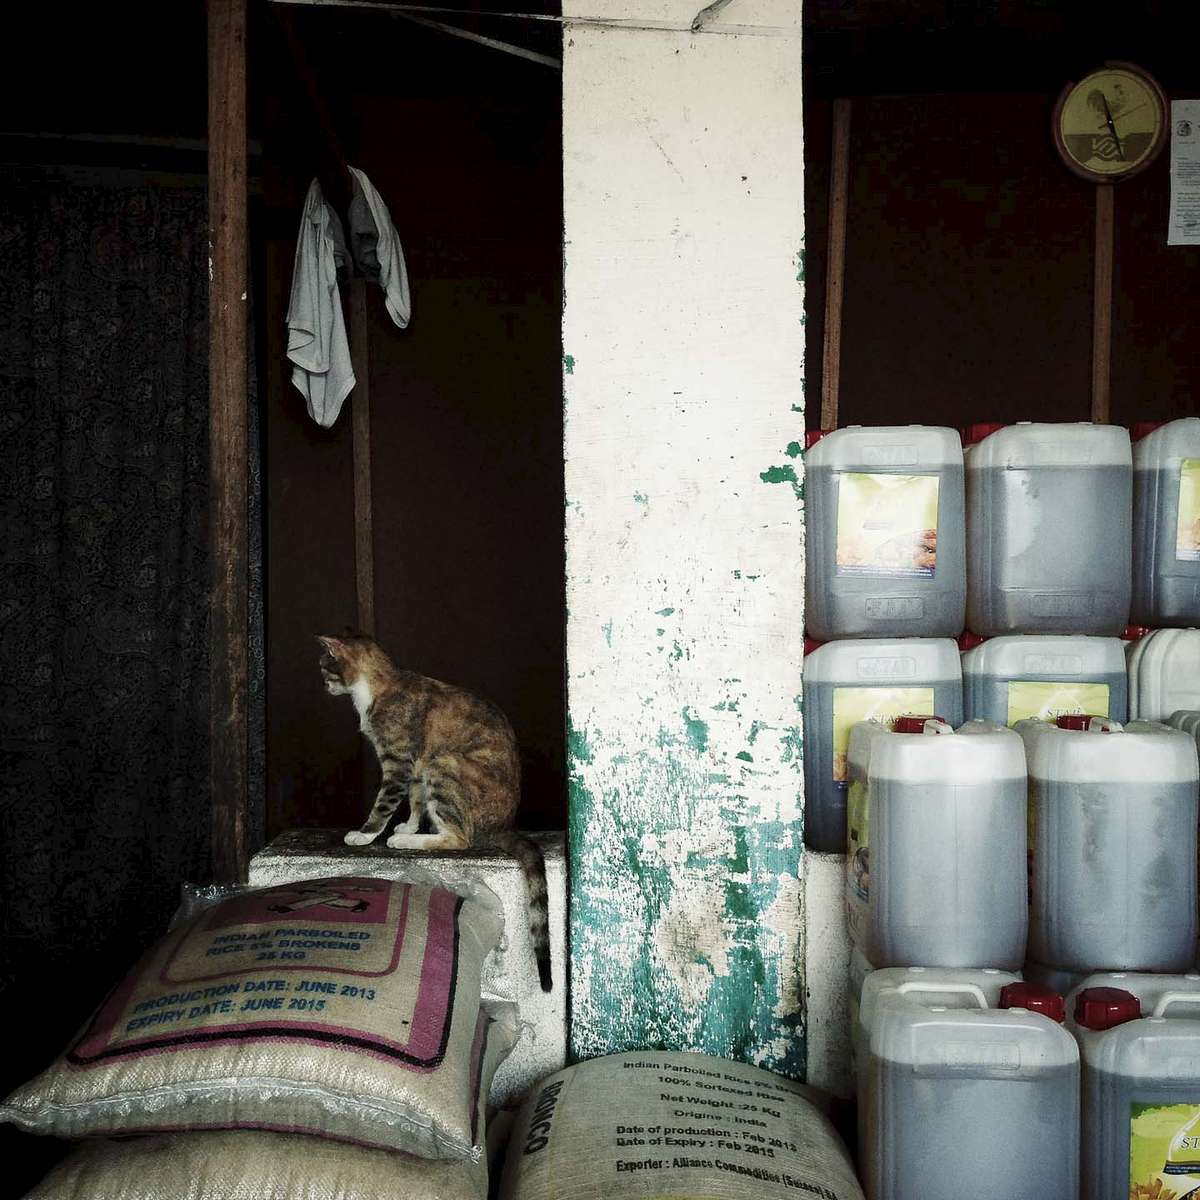 Cat on a ledge. Monrovia, Liberia. January 2013.